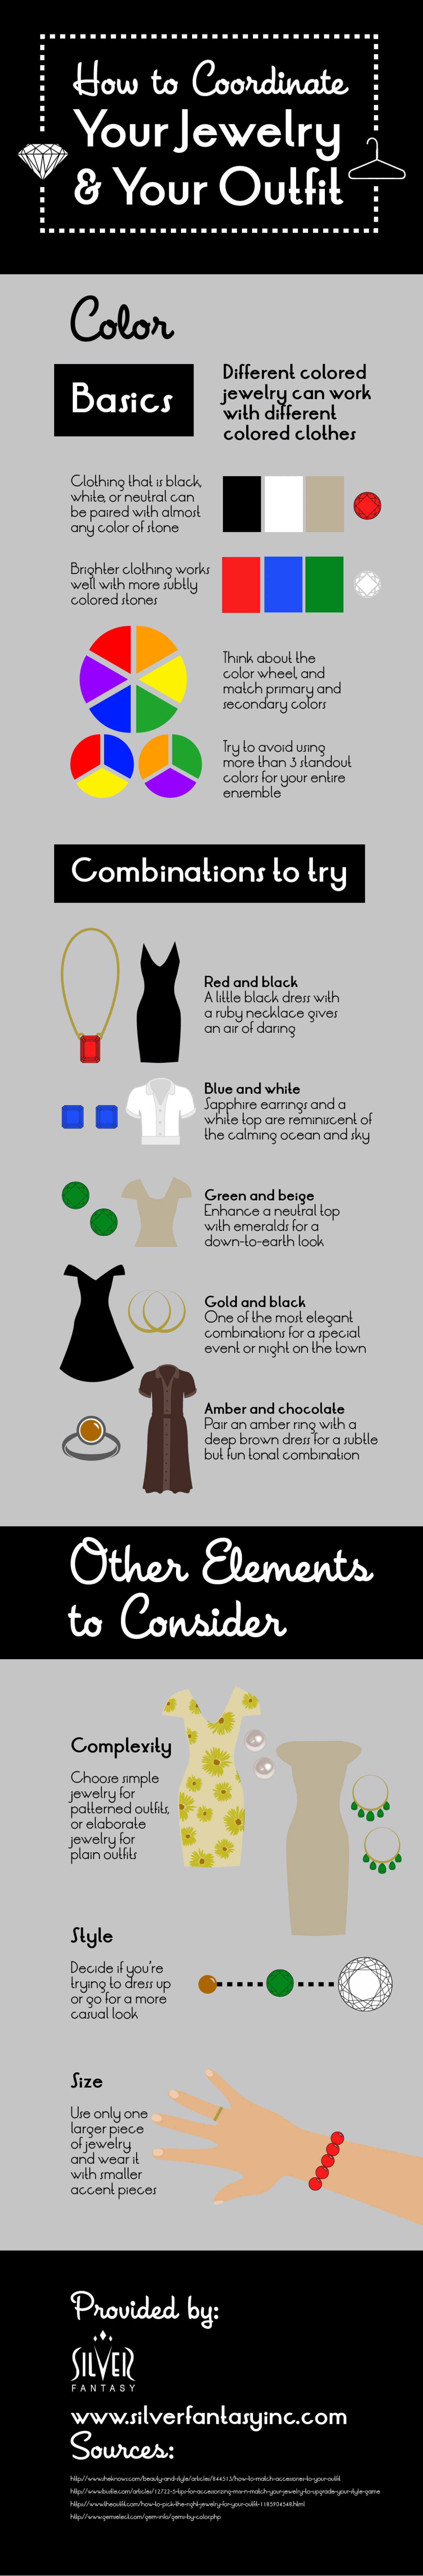 How to Coordinate Your Jewelry and Your Outfit Infographic